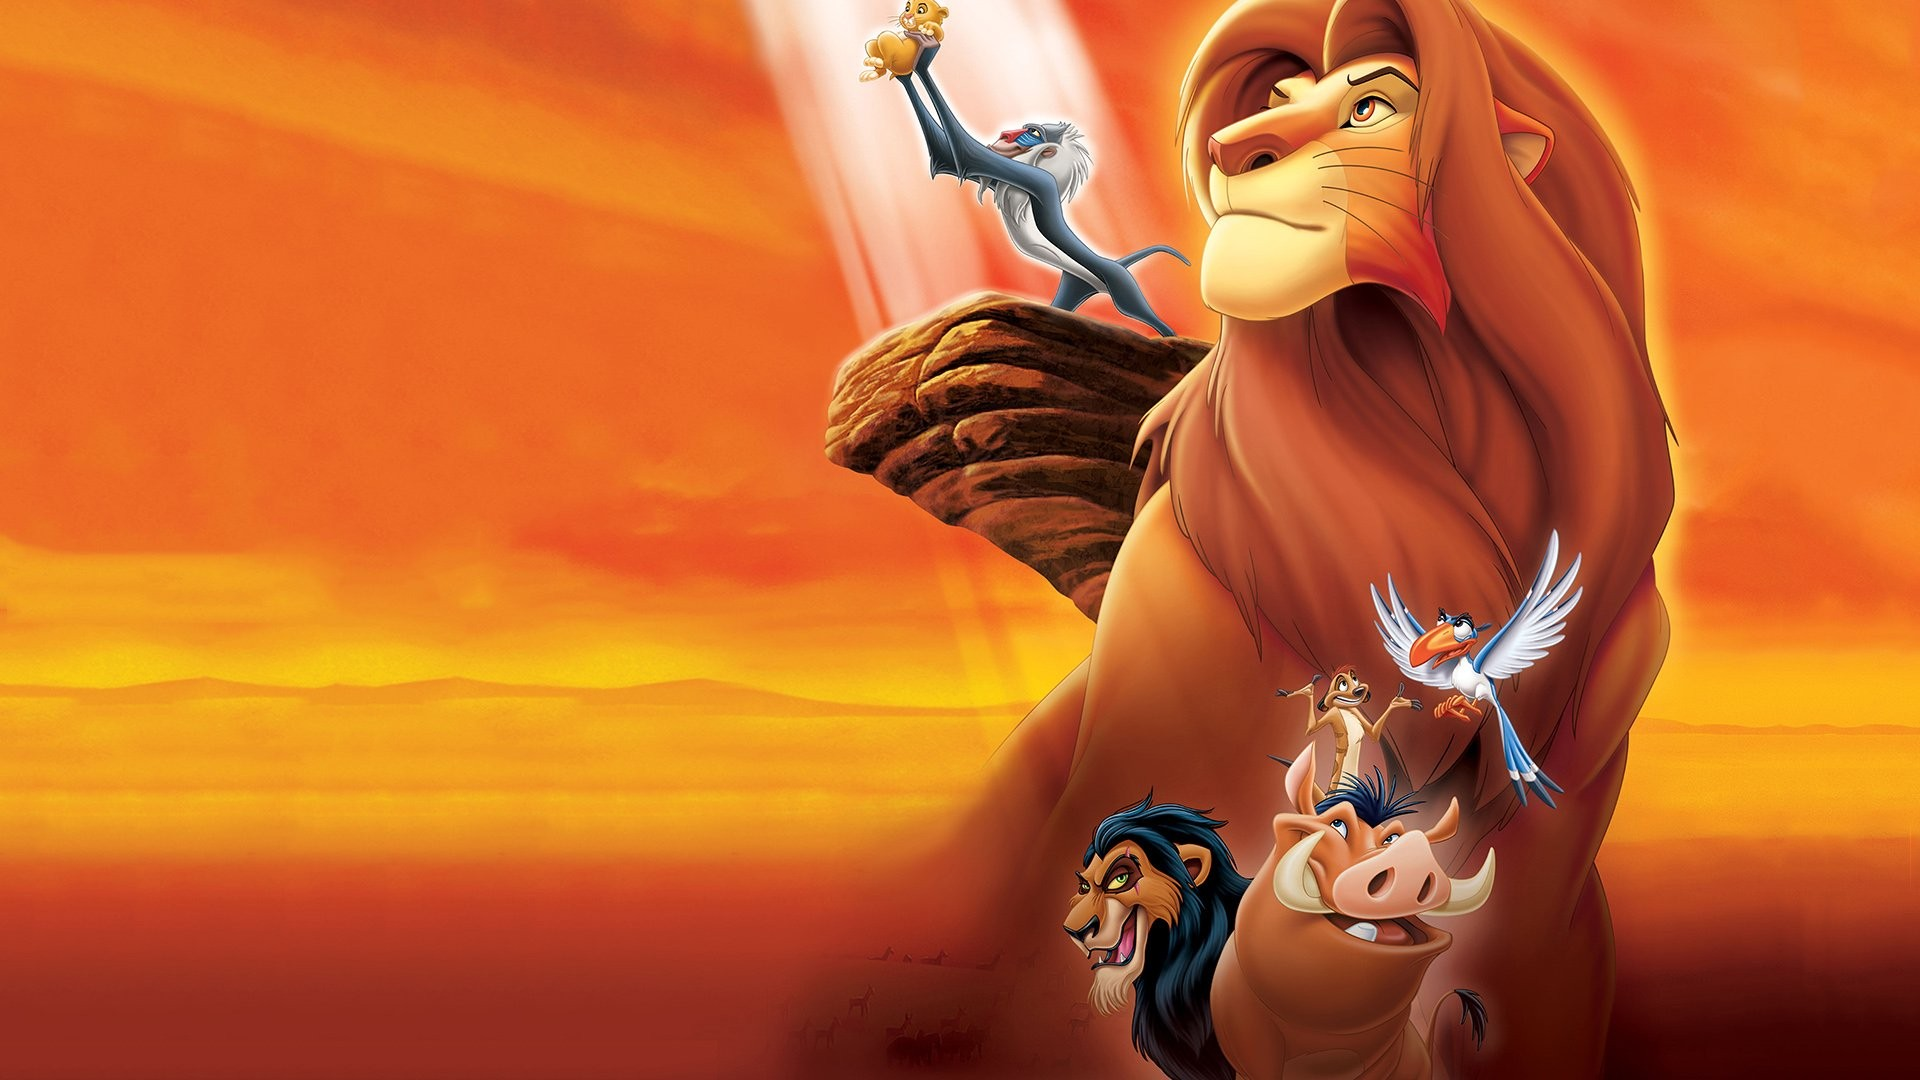 lion king wallpaper  u00b7 u2460 download free amazing hd wallpapers for desktop  mobile  laptop in any